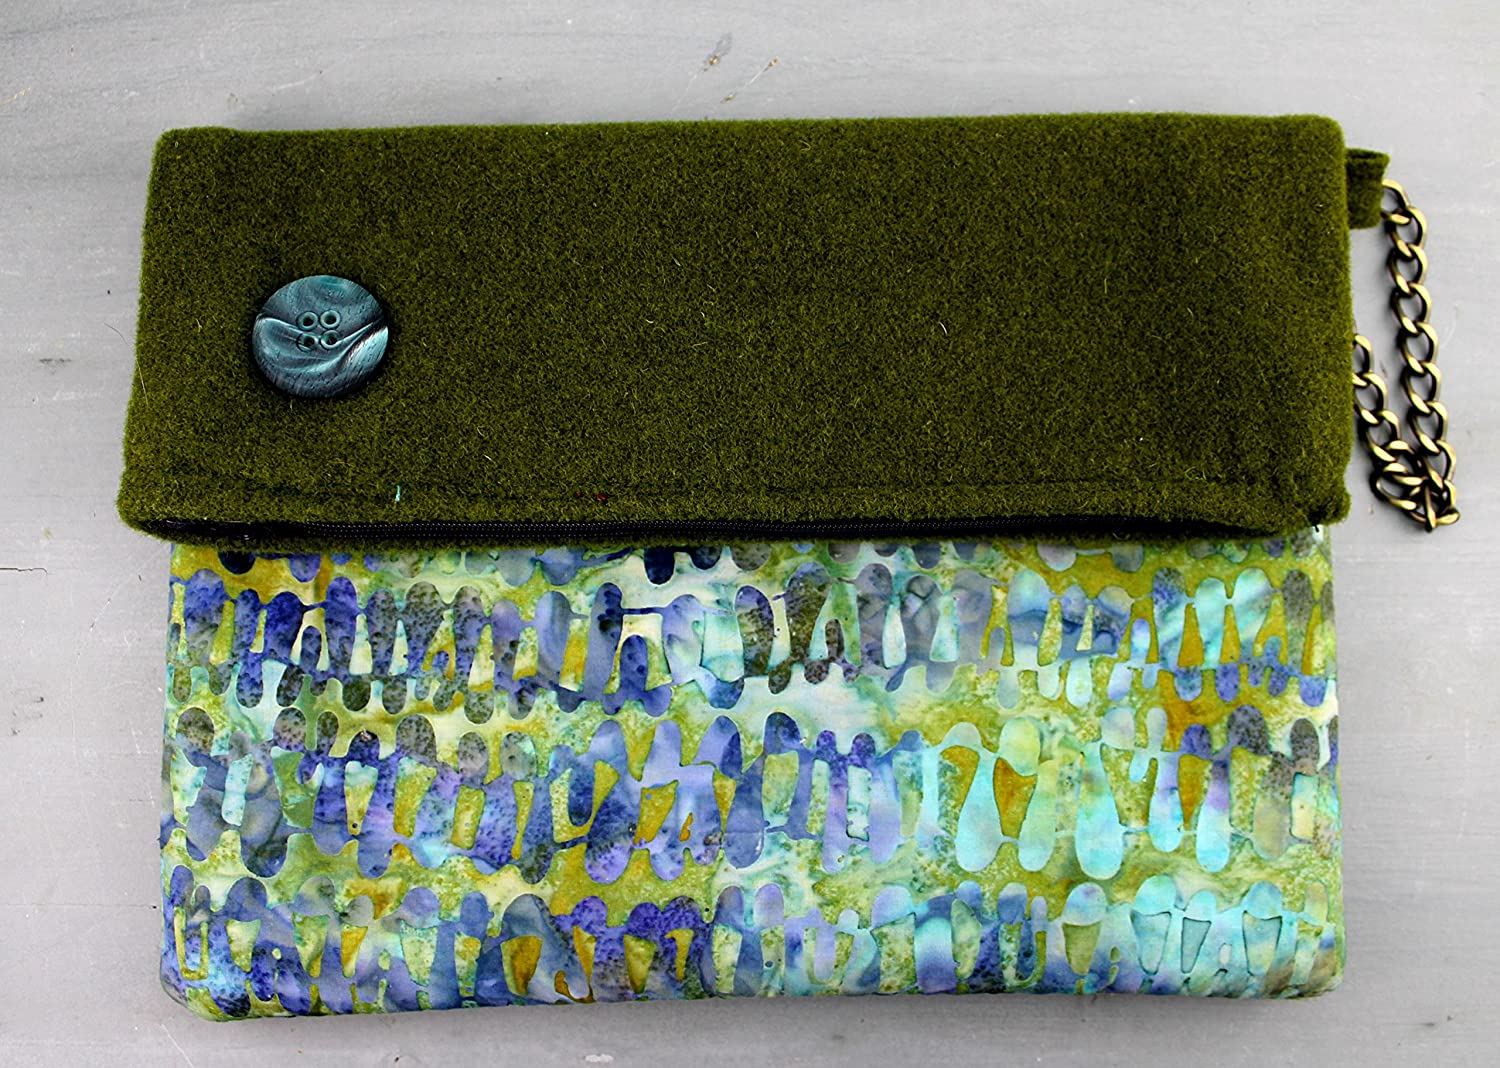 5bd973ec2b Clutch - Borsa a mano in Feltro verde muschio e batik cotone color mare:  Amazon.it: Handmade